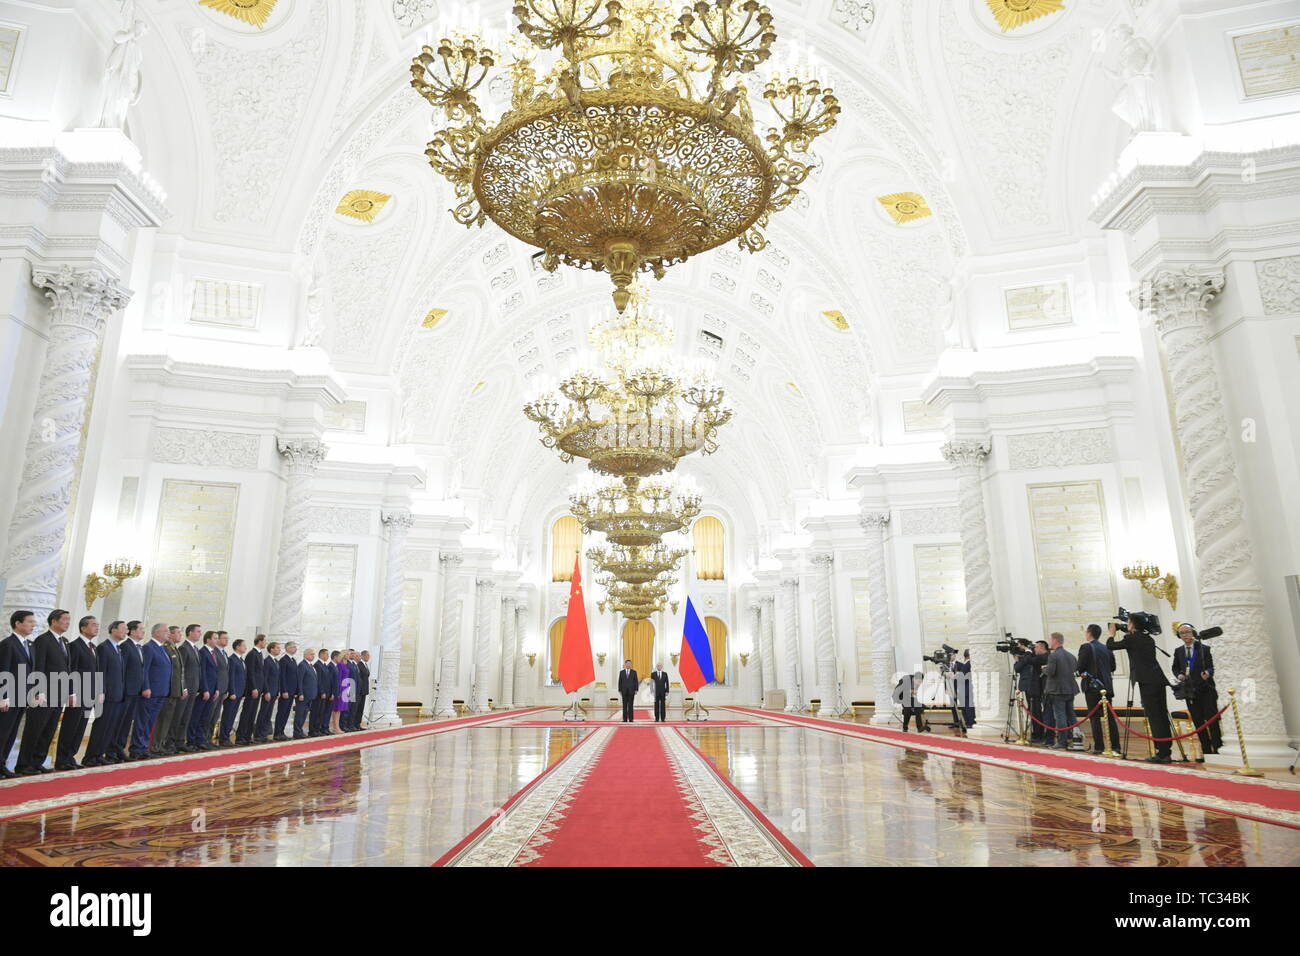 Moscow, Russia. 05th June, 2019. MOSCOW, RUSSIA - JUNE 5, 2019: China's President Xi Jinping and Russia's President Vladimir Putin (L-R centre) during a meeting in the Moscow Kremlin; the Chinese leader is on a three-day state visit to Russia. Alexei Druzhinin/Russian Presidential Press and Information Office/TASS Credit: ITAR-TASS News Agency/Alamy Live News - Stock Image